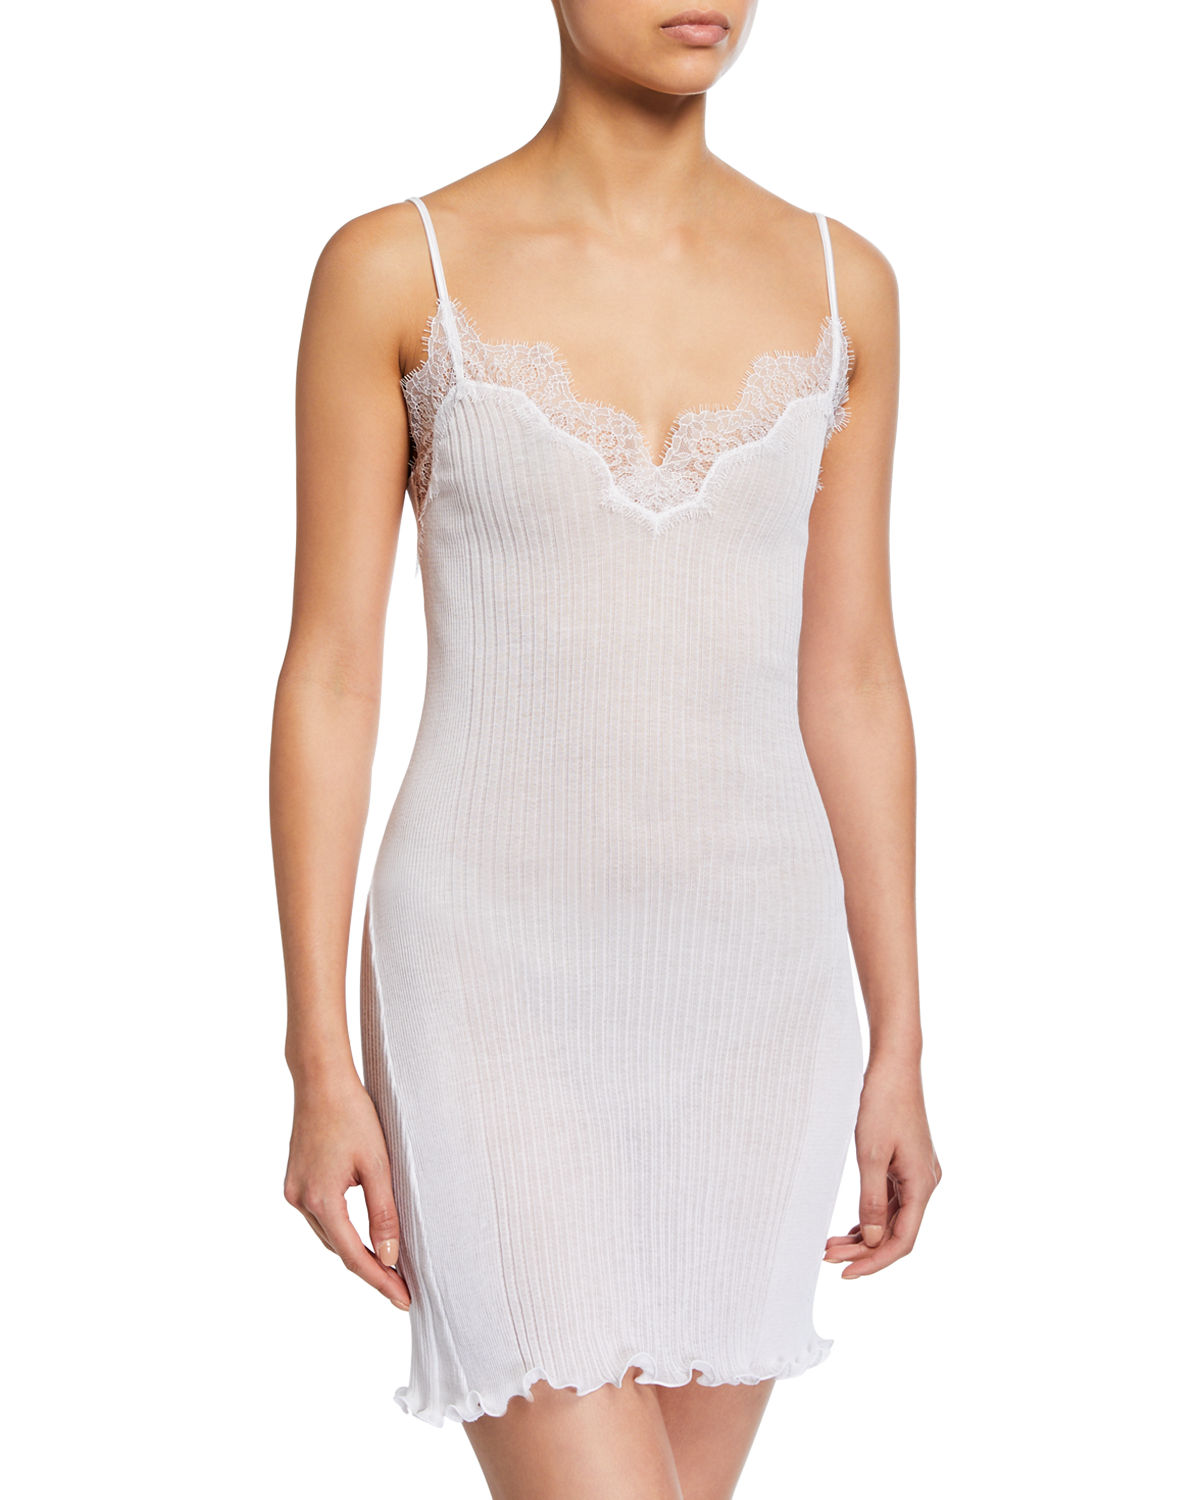 Zimmerli RIBBED COTTON CHEMISE WITH LACE TRIM